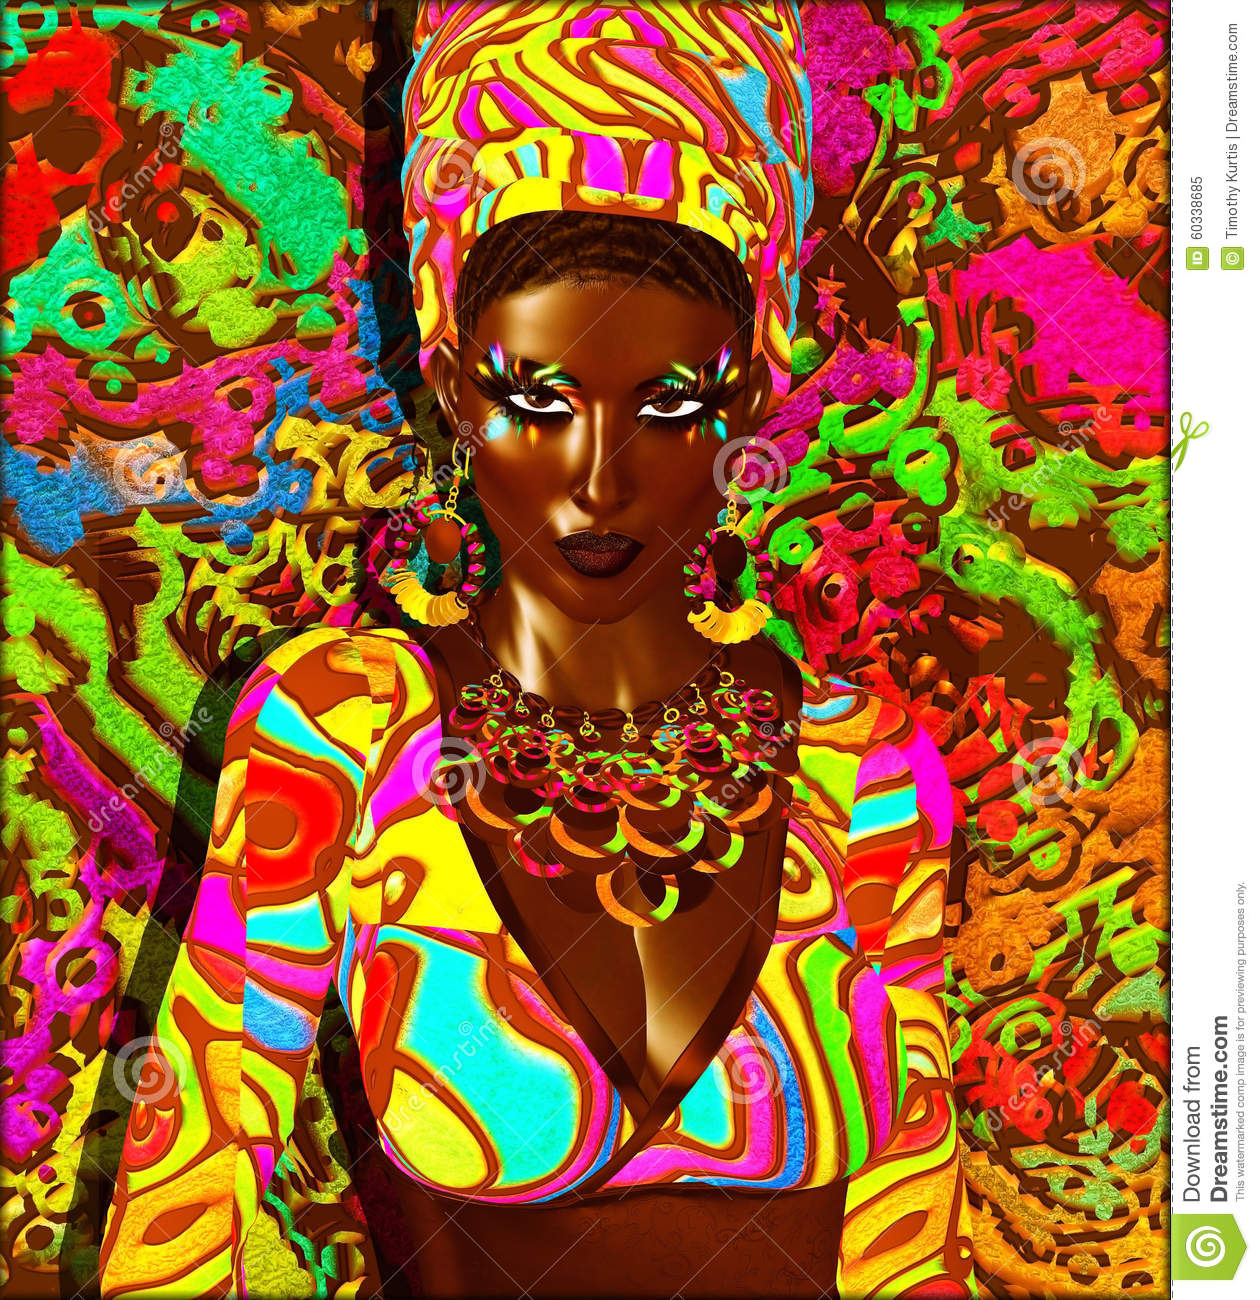 African American Wallpaper: Beauty Of Africa. Colorful Digital Art Scene Of A